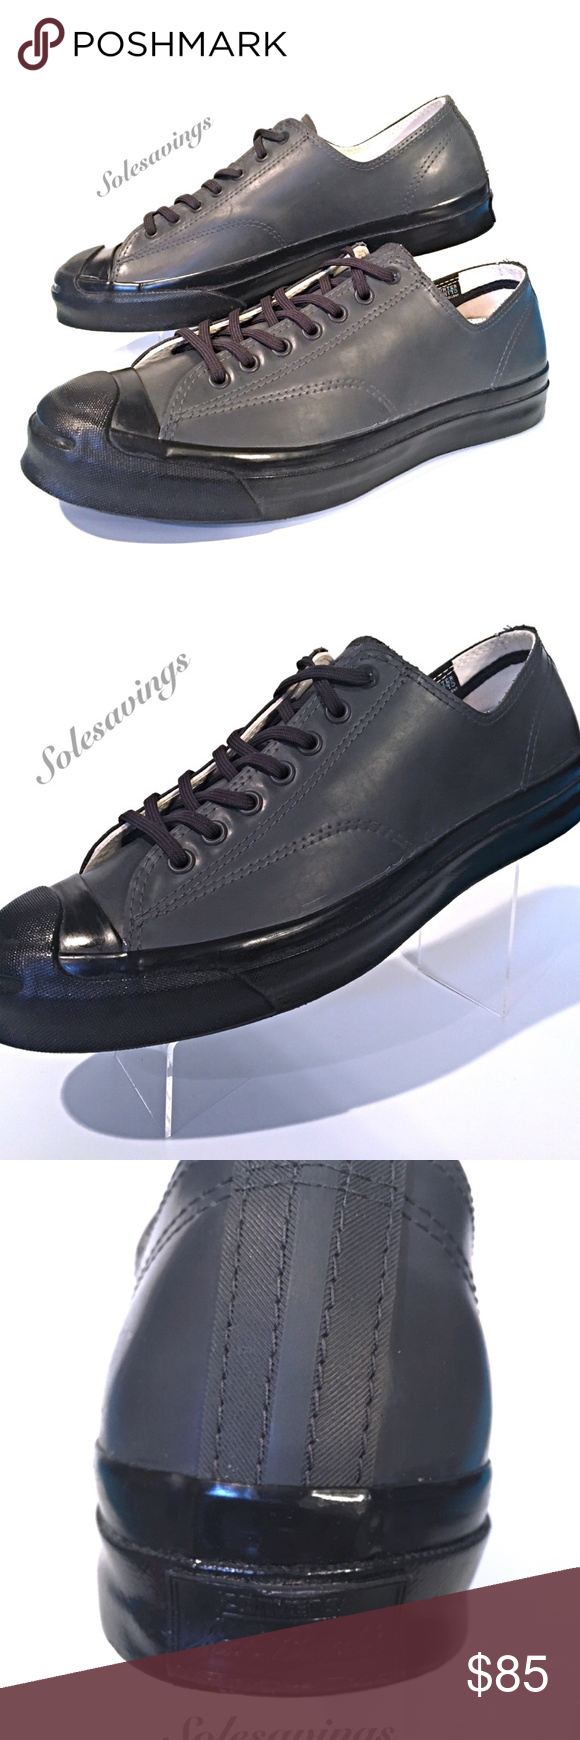 faf454b09a19 Converse Jack Purcell Signature Ox Black Mens New Converse Jack Purcell  Signature Ox New with Original